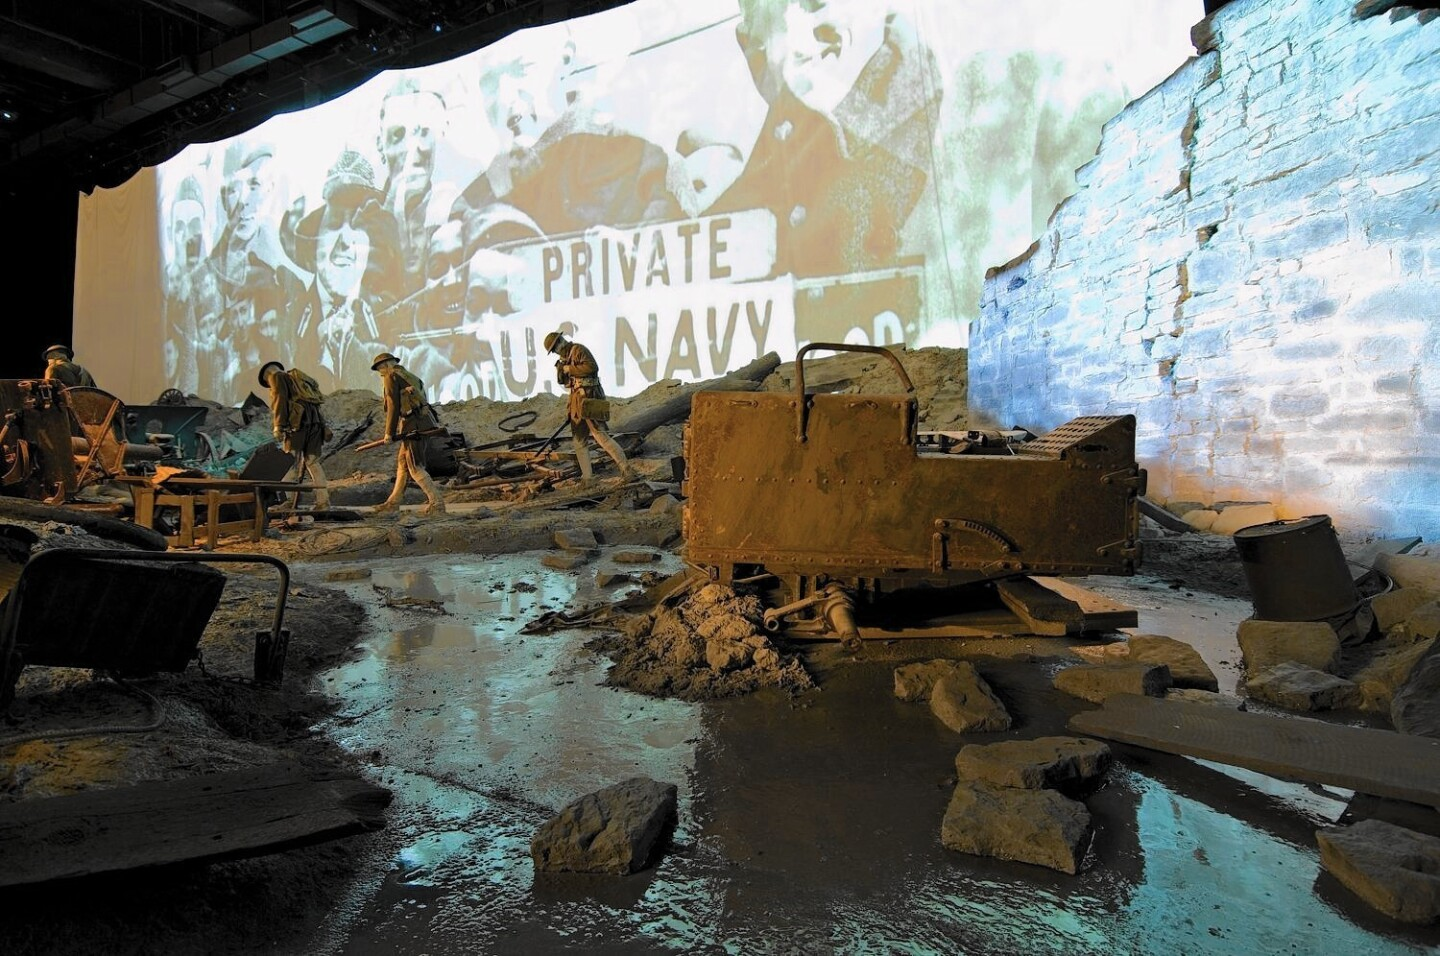 Real war wreckage from the museum's collection is used in the re-created no-man's-land in one of the museum's theaters.